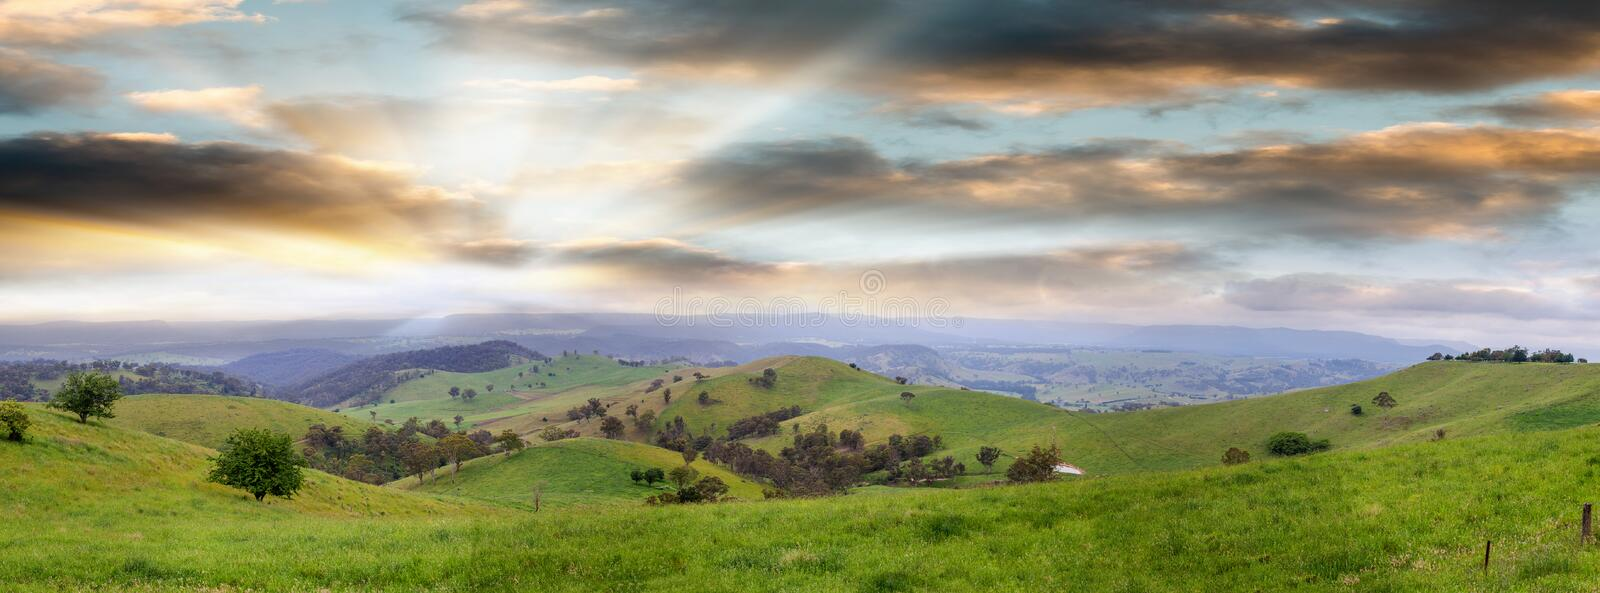 Panoramic view of Australian countryside at sunset, New South Wa royalty free stock image